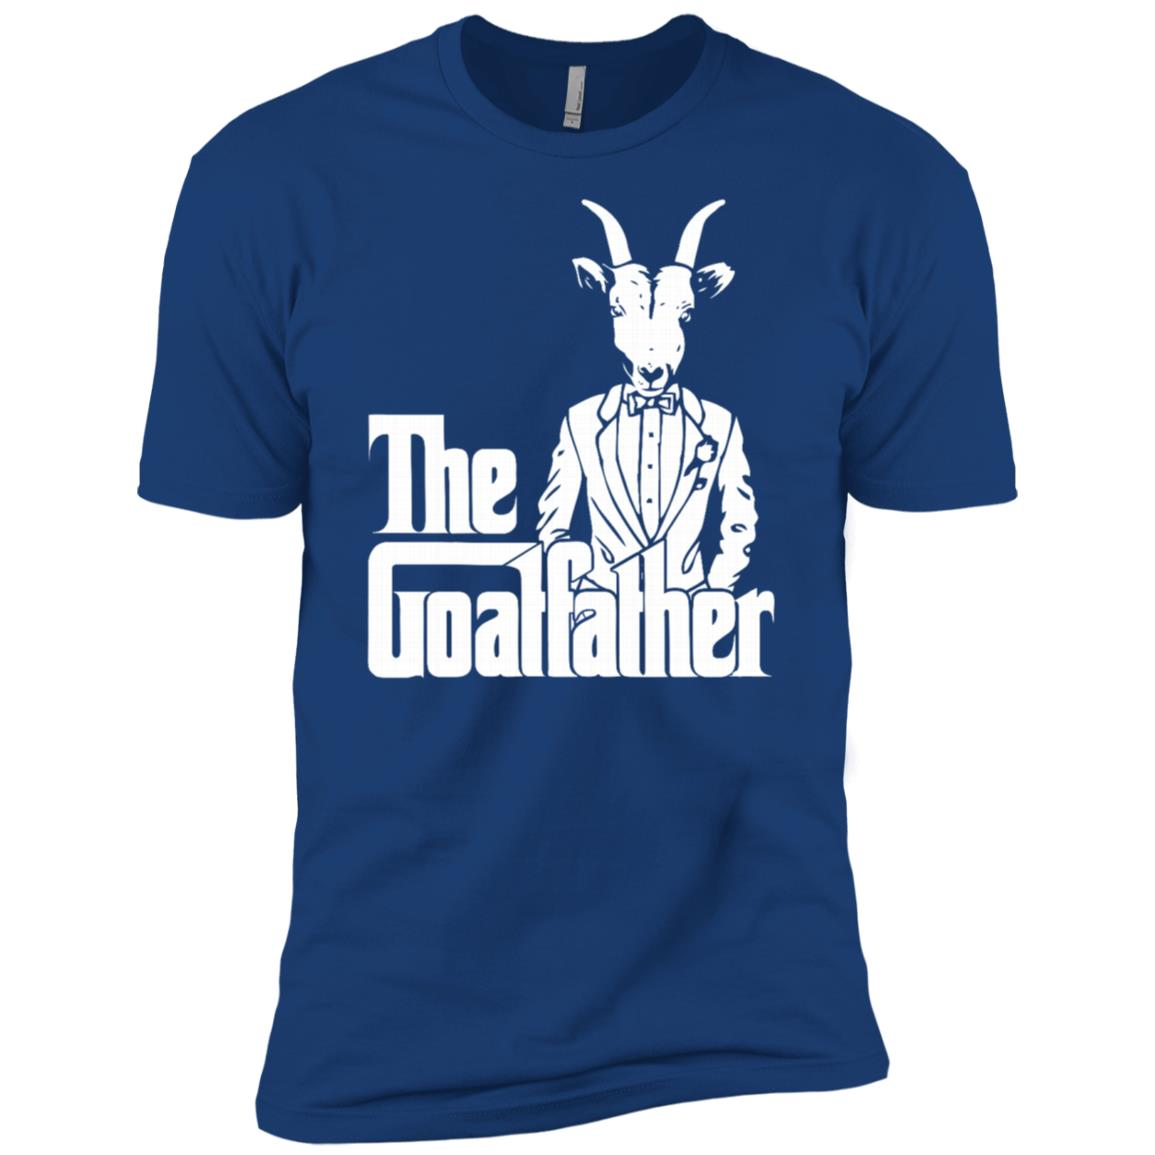 The Goatfather Goat Lover Animal Funny Gift Men Short Sleeve T-Shirt